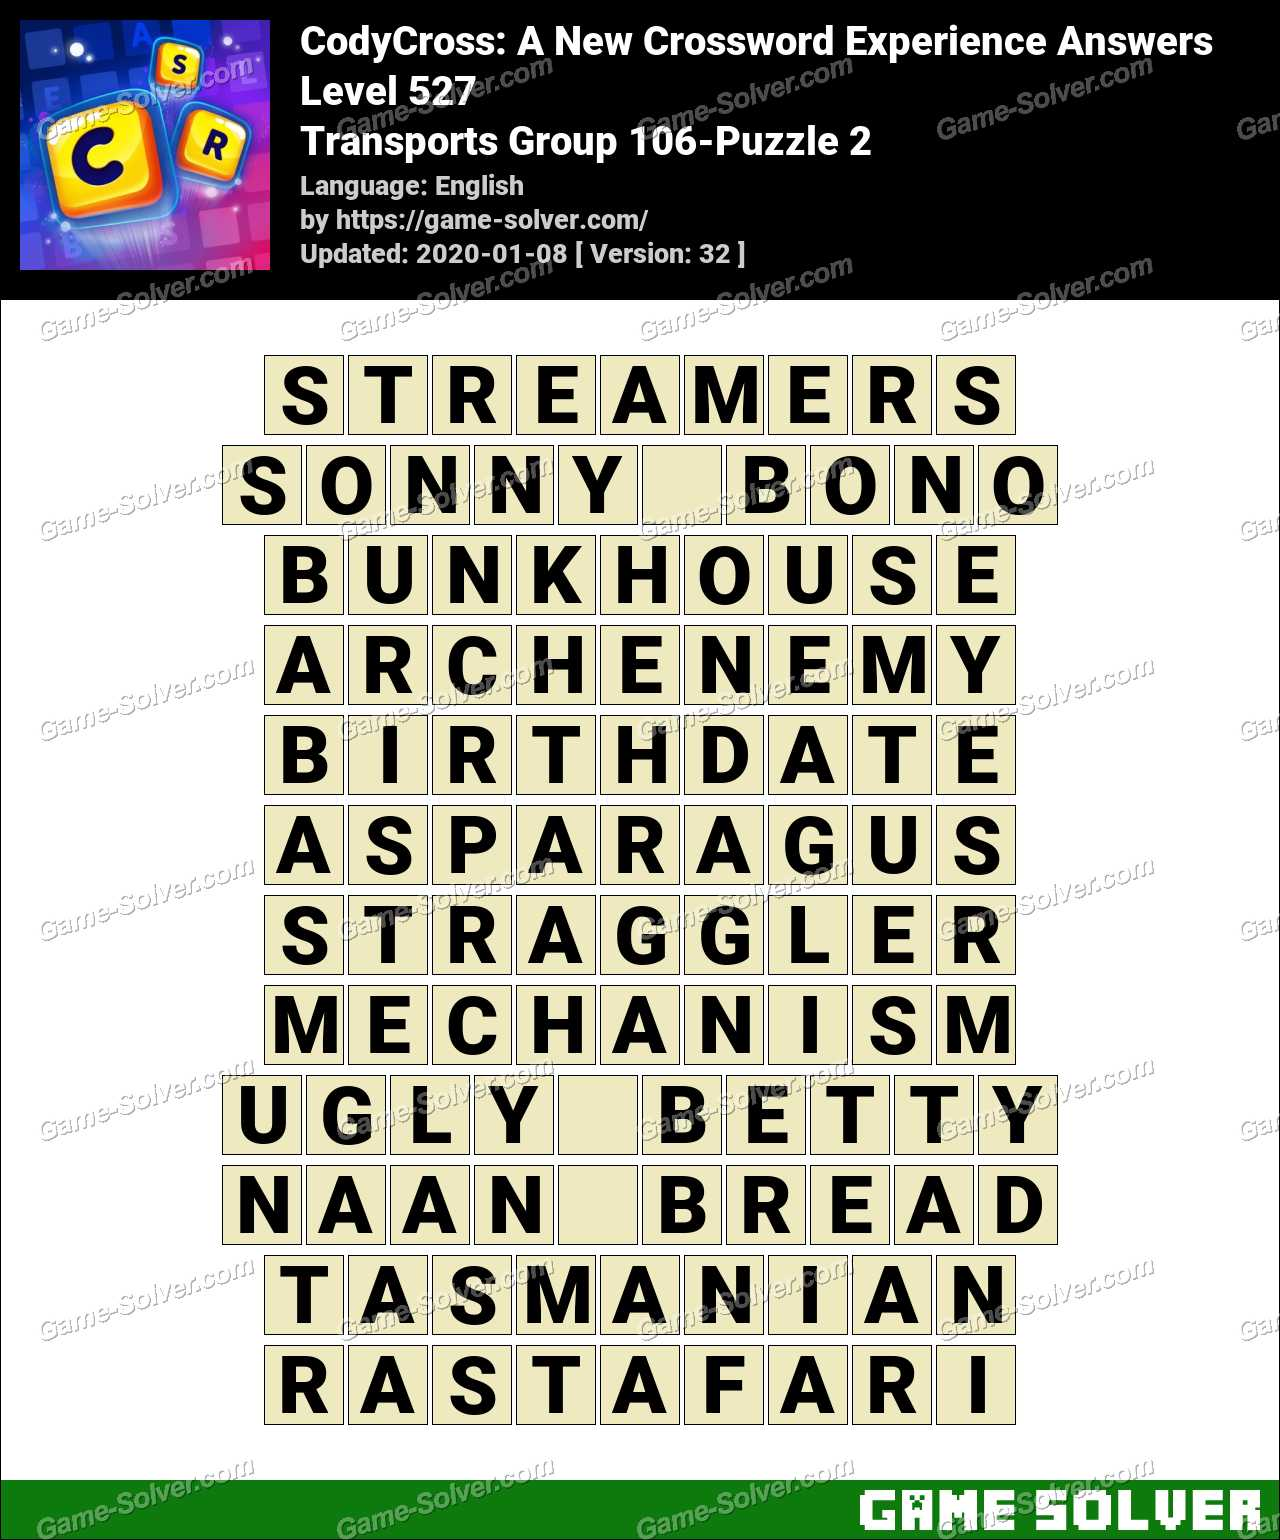 CodyCross Transports Group 106-Puzzle 2 Answers